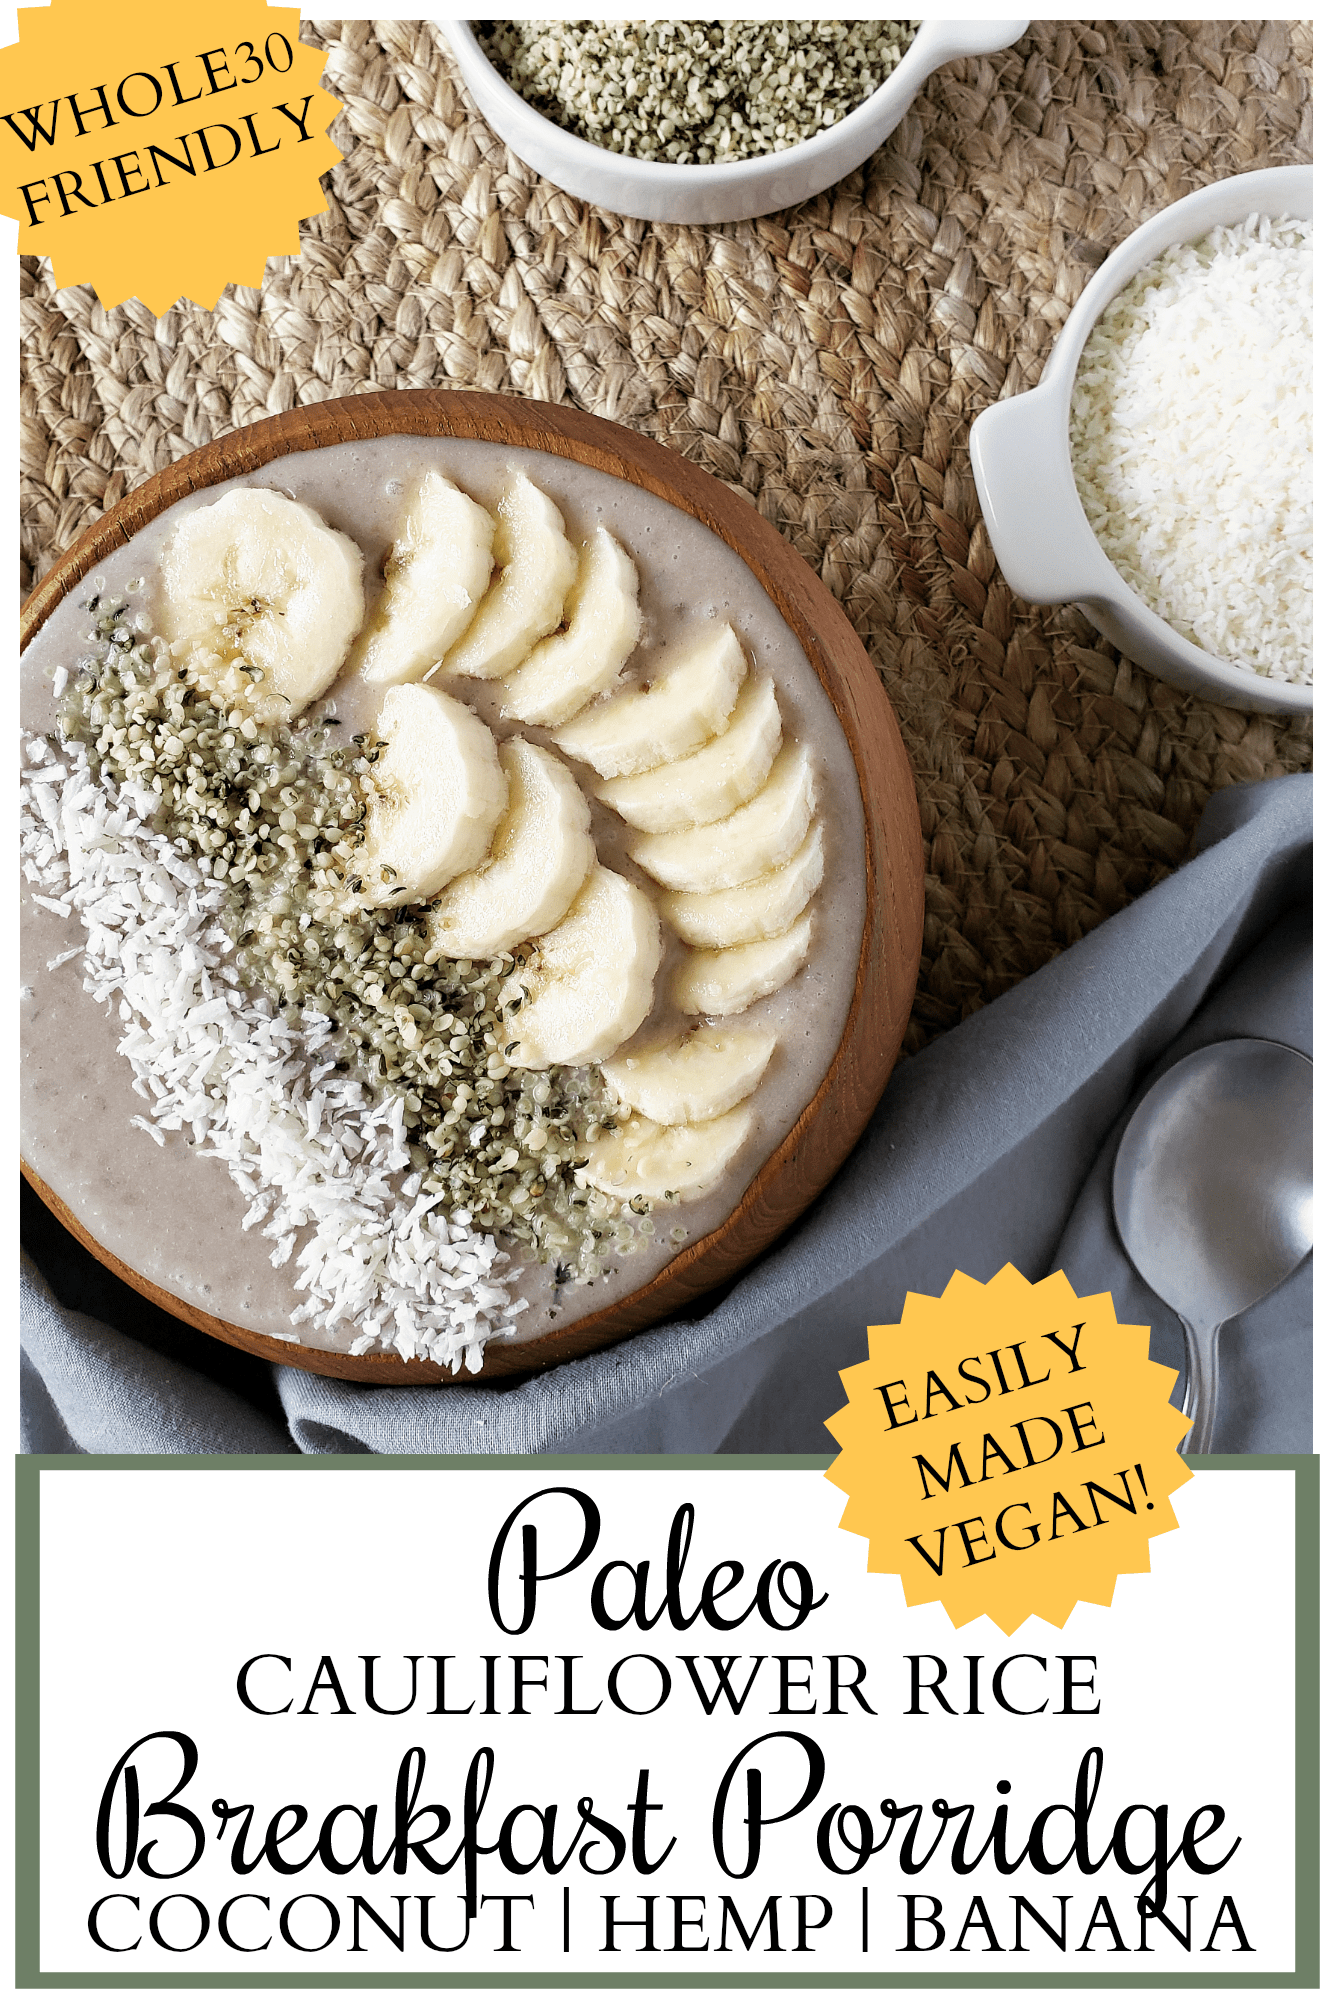 Start your day with a serving of vegetables so delicious you won\'t believe it! This quick and easy Paleo breakfast porridge is hiding cauliflower rice along with other nutritious ingredients, yet it tastes great! Easy, Paleo, Whole30 and allergy-friendly, this Paleo breakfast porridge is a great substitute for oatmeal and other traditional grain-filled breakfast options.